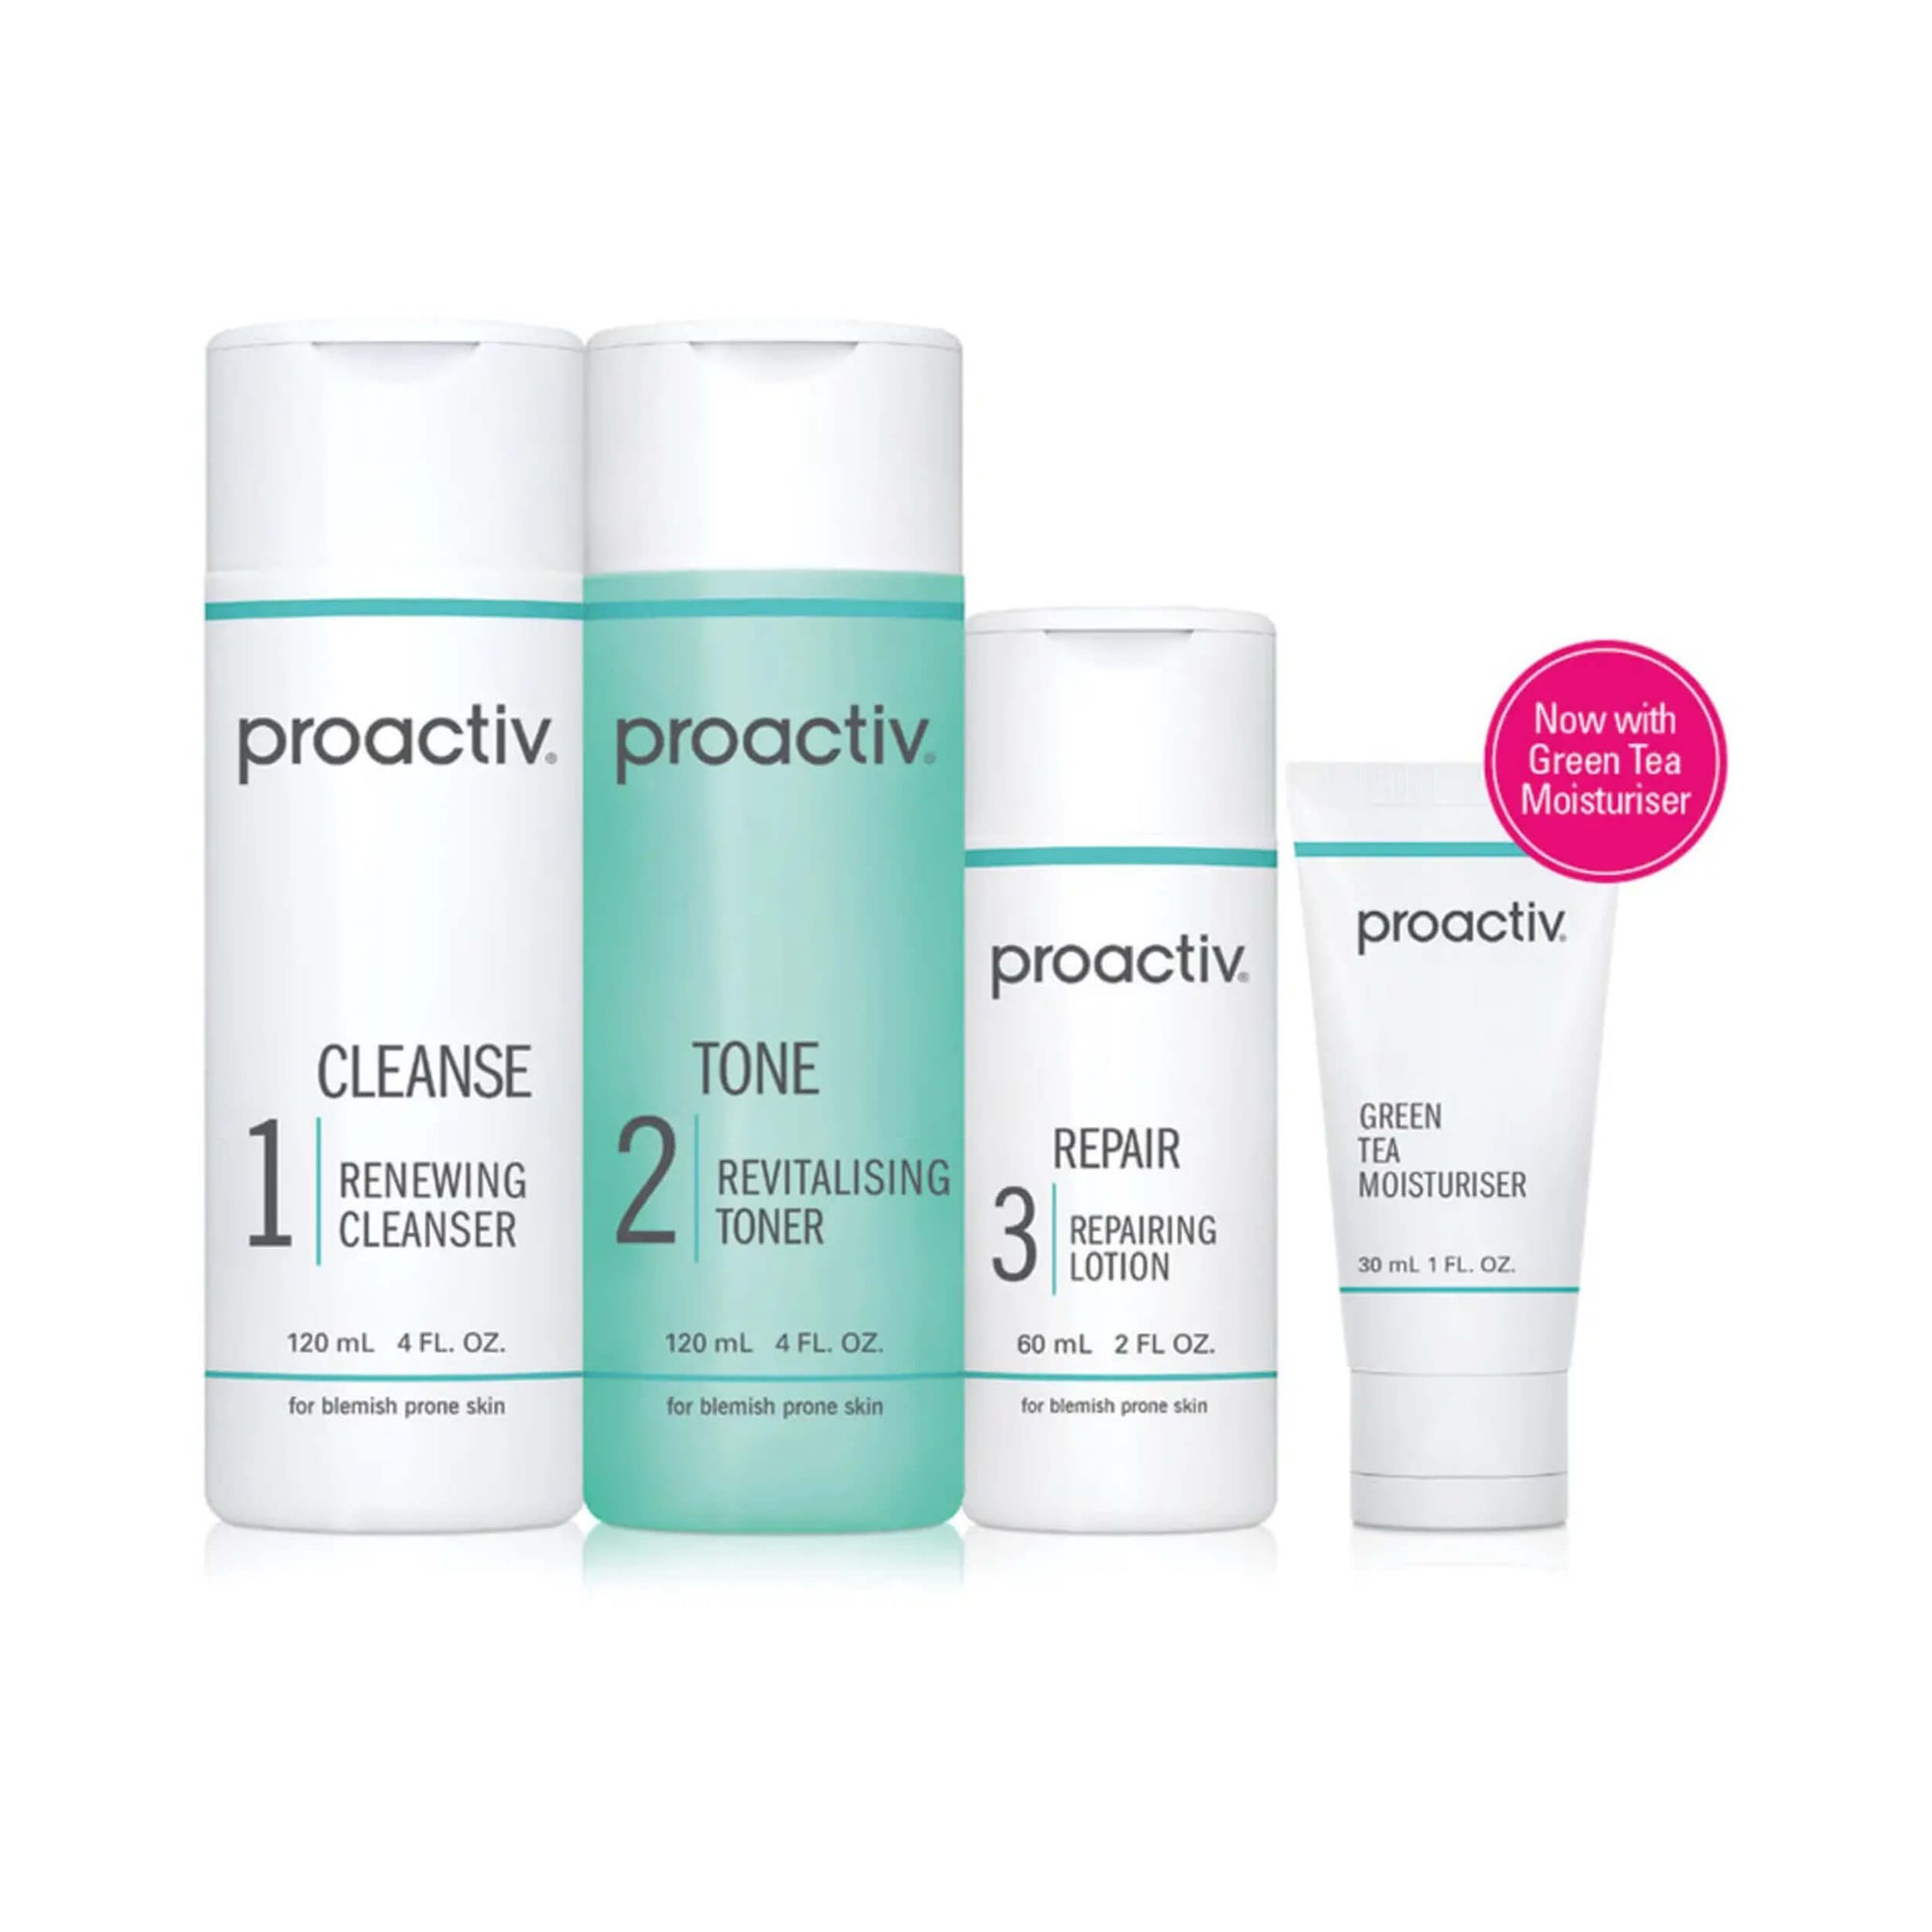 Proactiv Green Tea Moisturising Kit